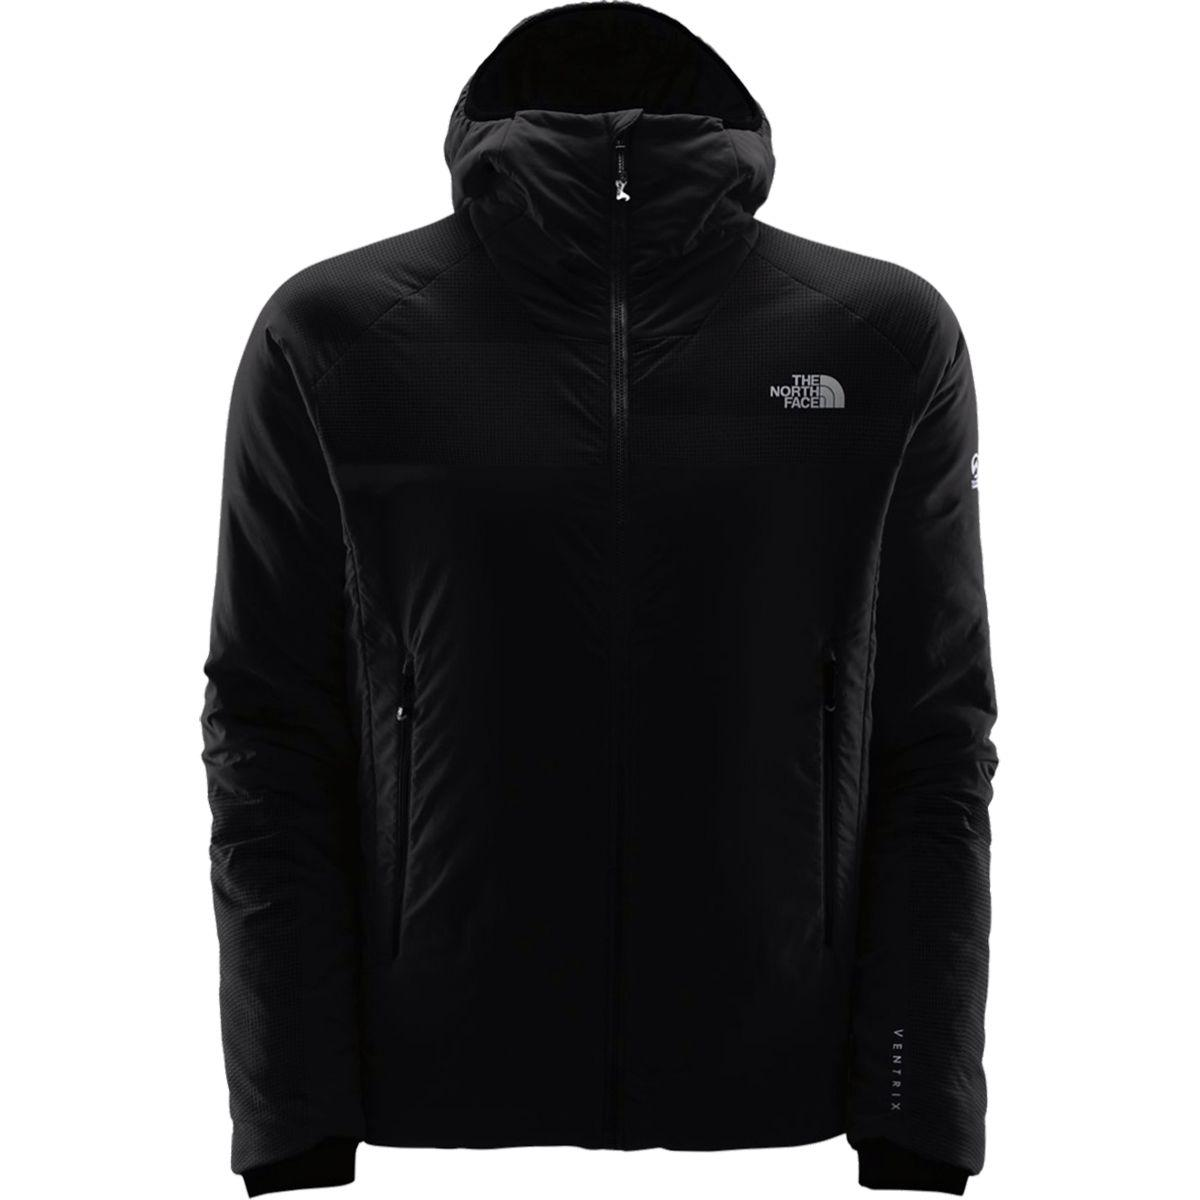 36c48cac8f6d The North Face - Black Summit L3 Ventrix Hooded Insulated Jacket for Men -  Lyst